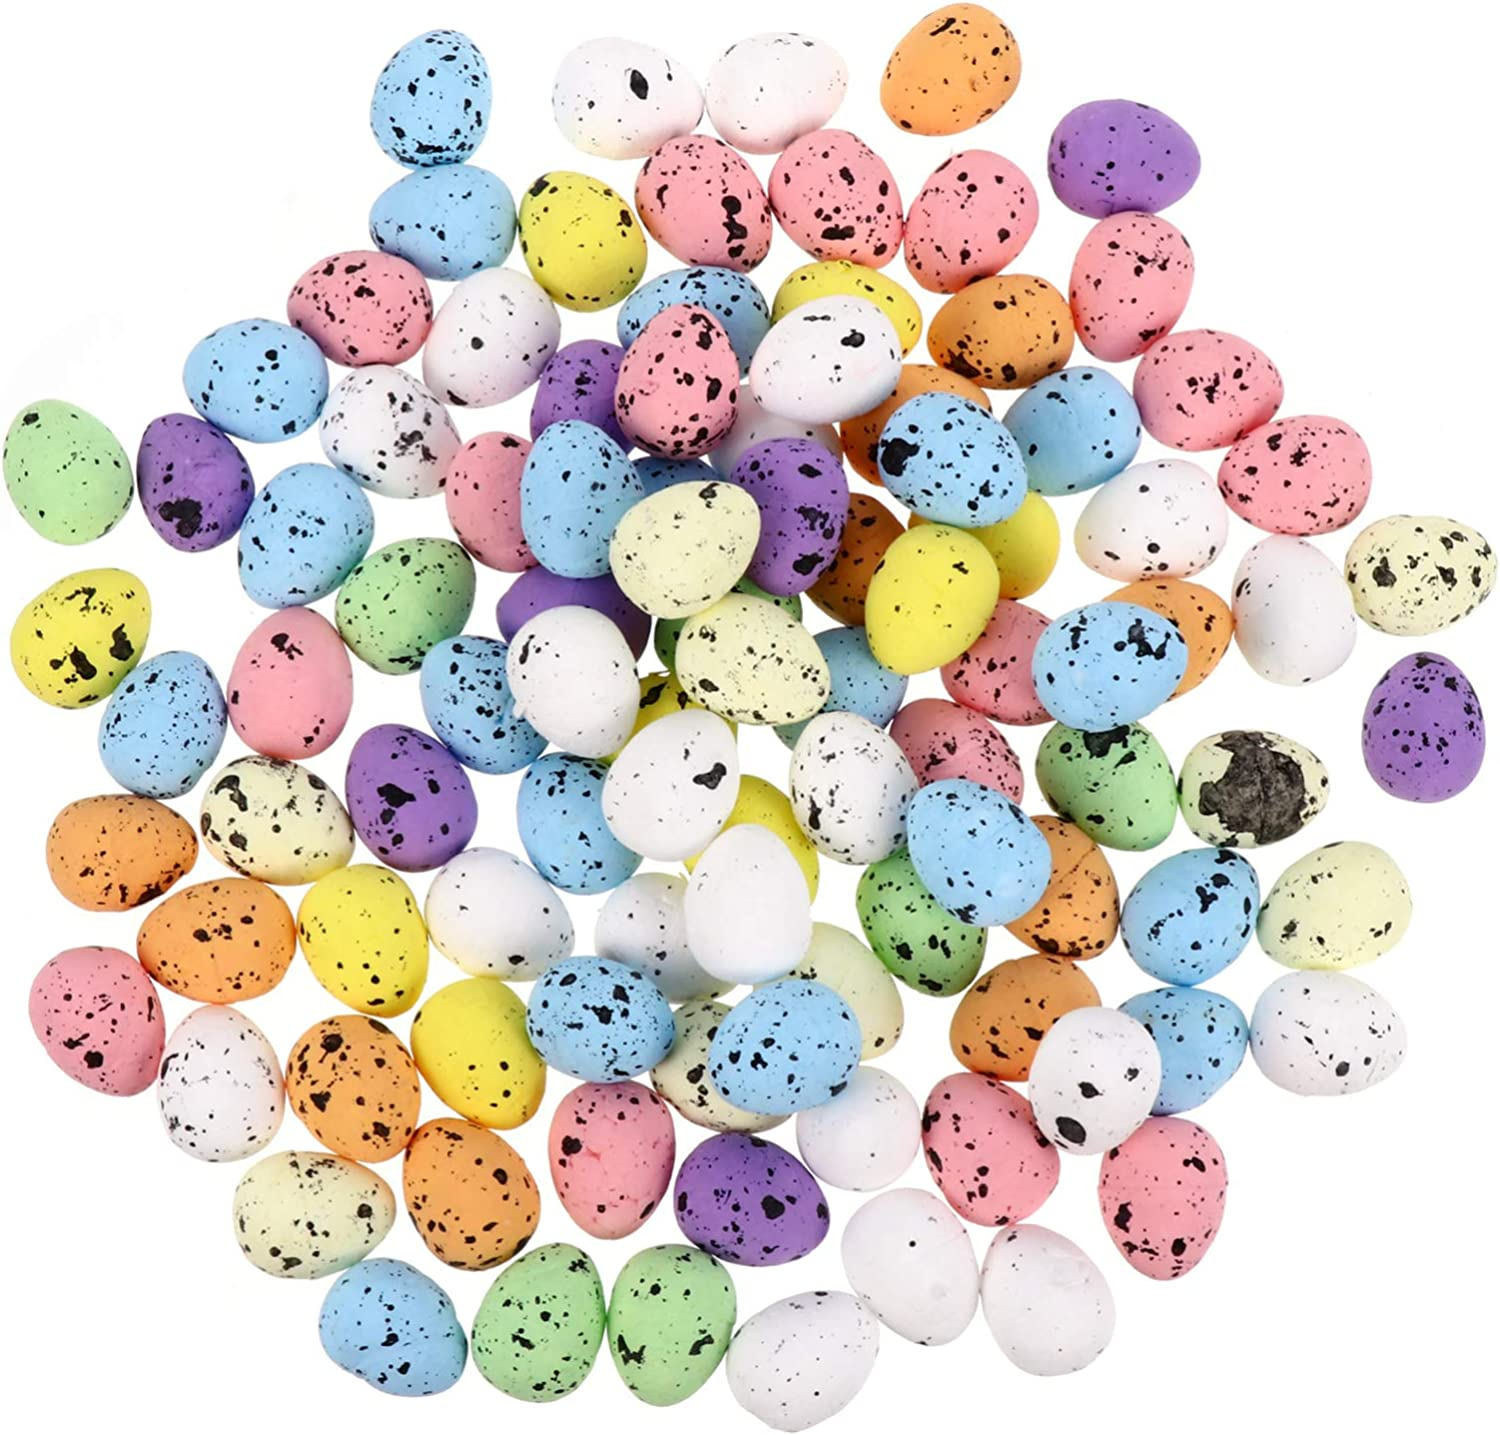 PRETYZOOM 100pcs Speckled Eggs Children's Day Decorative Crafts DIY Supplies Easter Eggs Ornaments for Home Garden Decor, 0. 6 x 0. 7 Inch